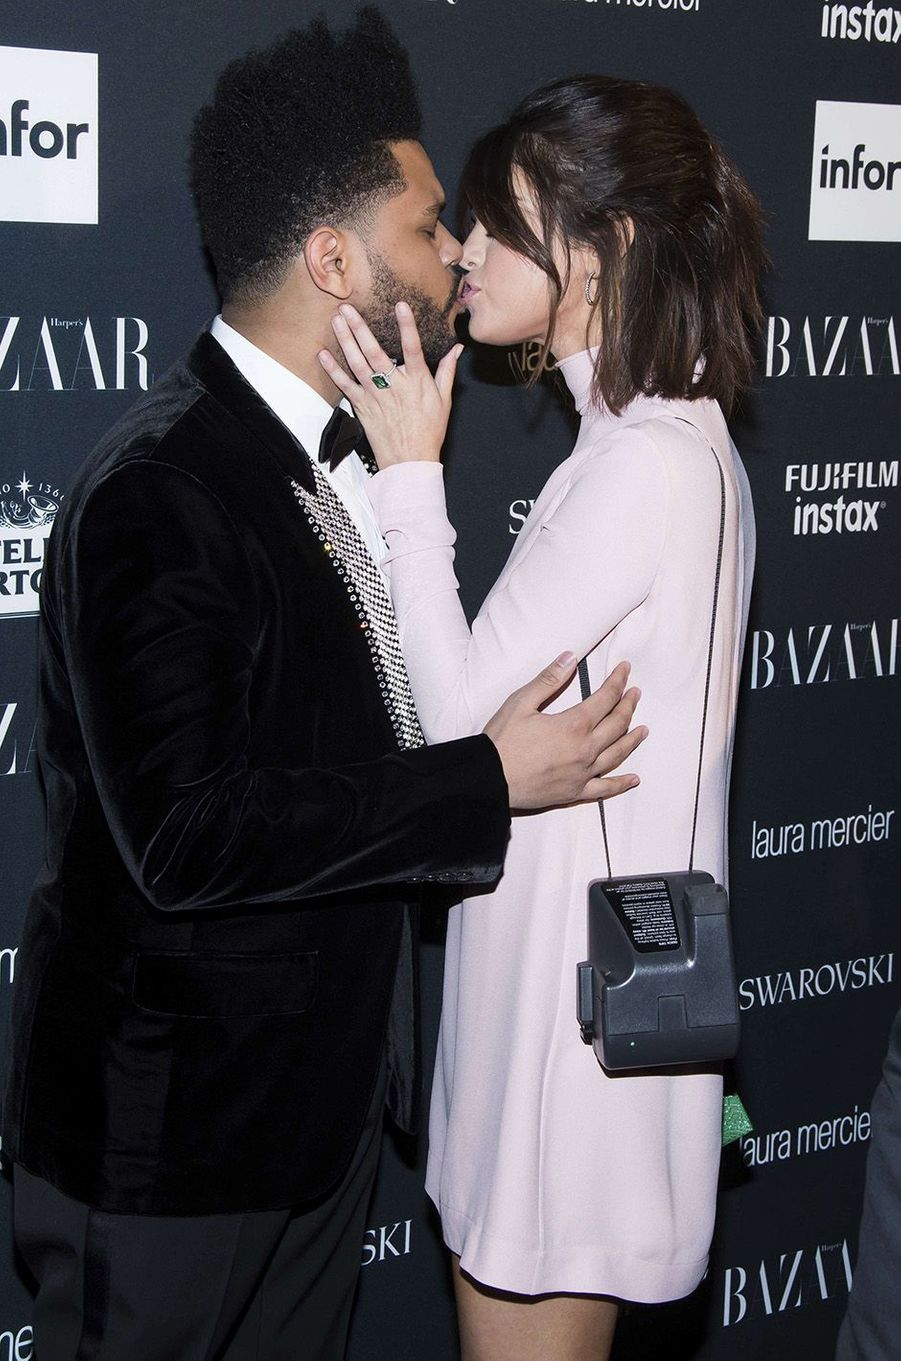 Selena Gomez et The Weeknd à la soirée Harper's Bazaar ICONS Party, à New York, le 8 septembre 2017.